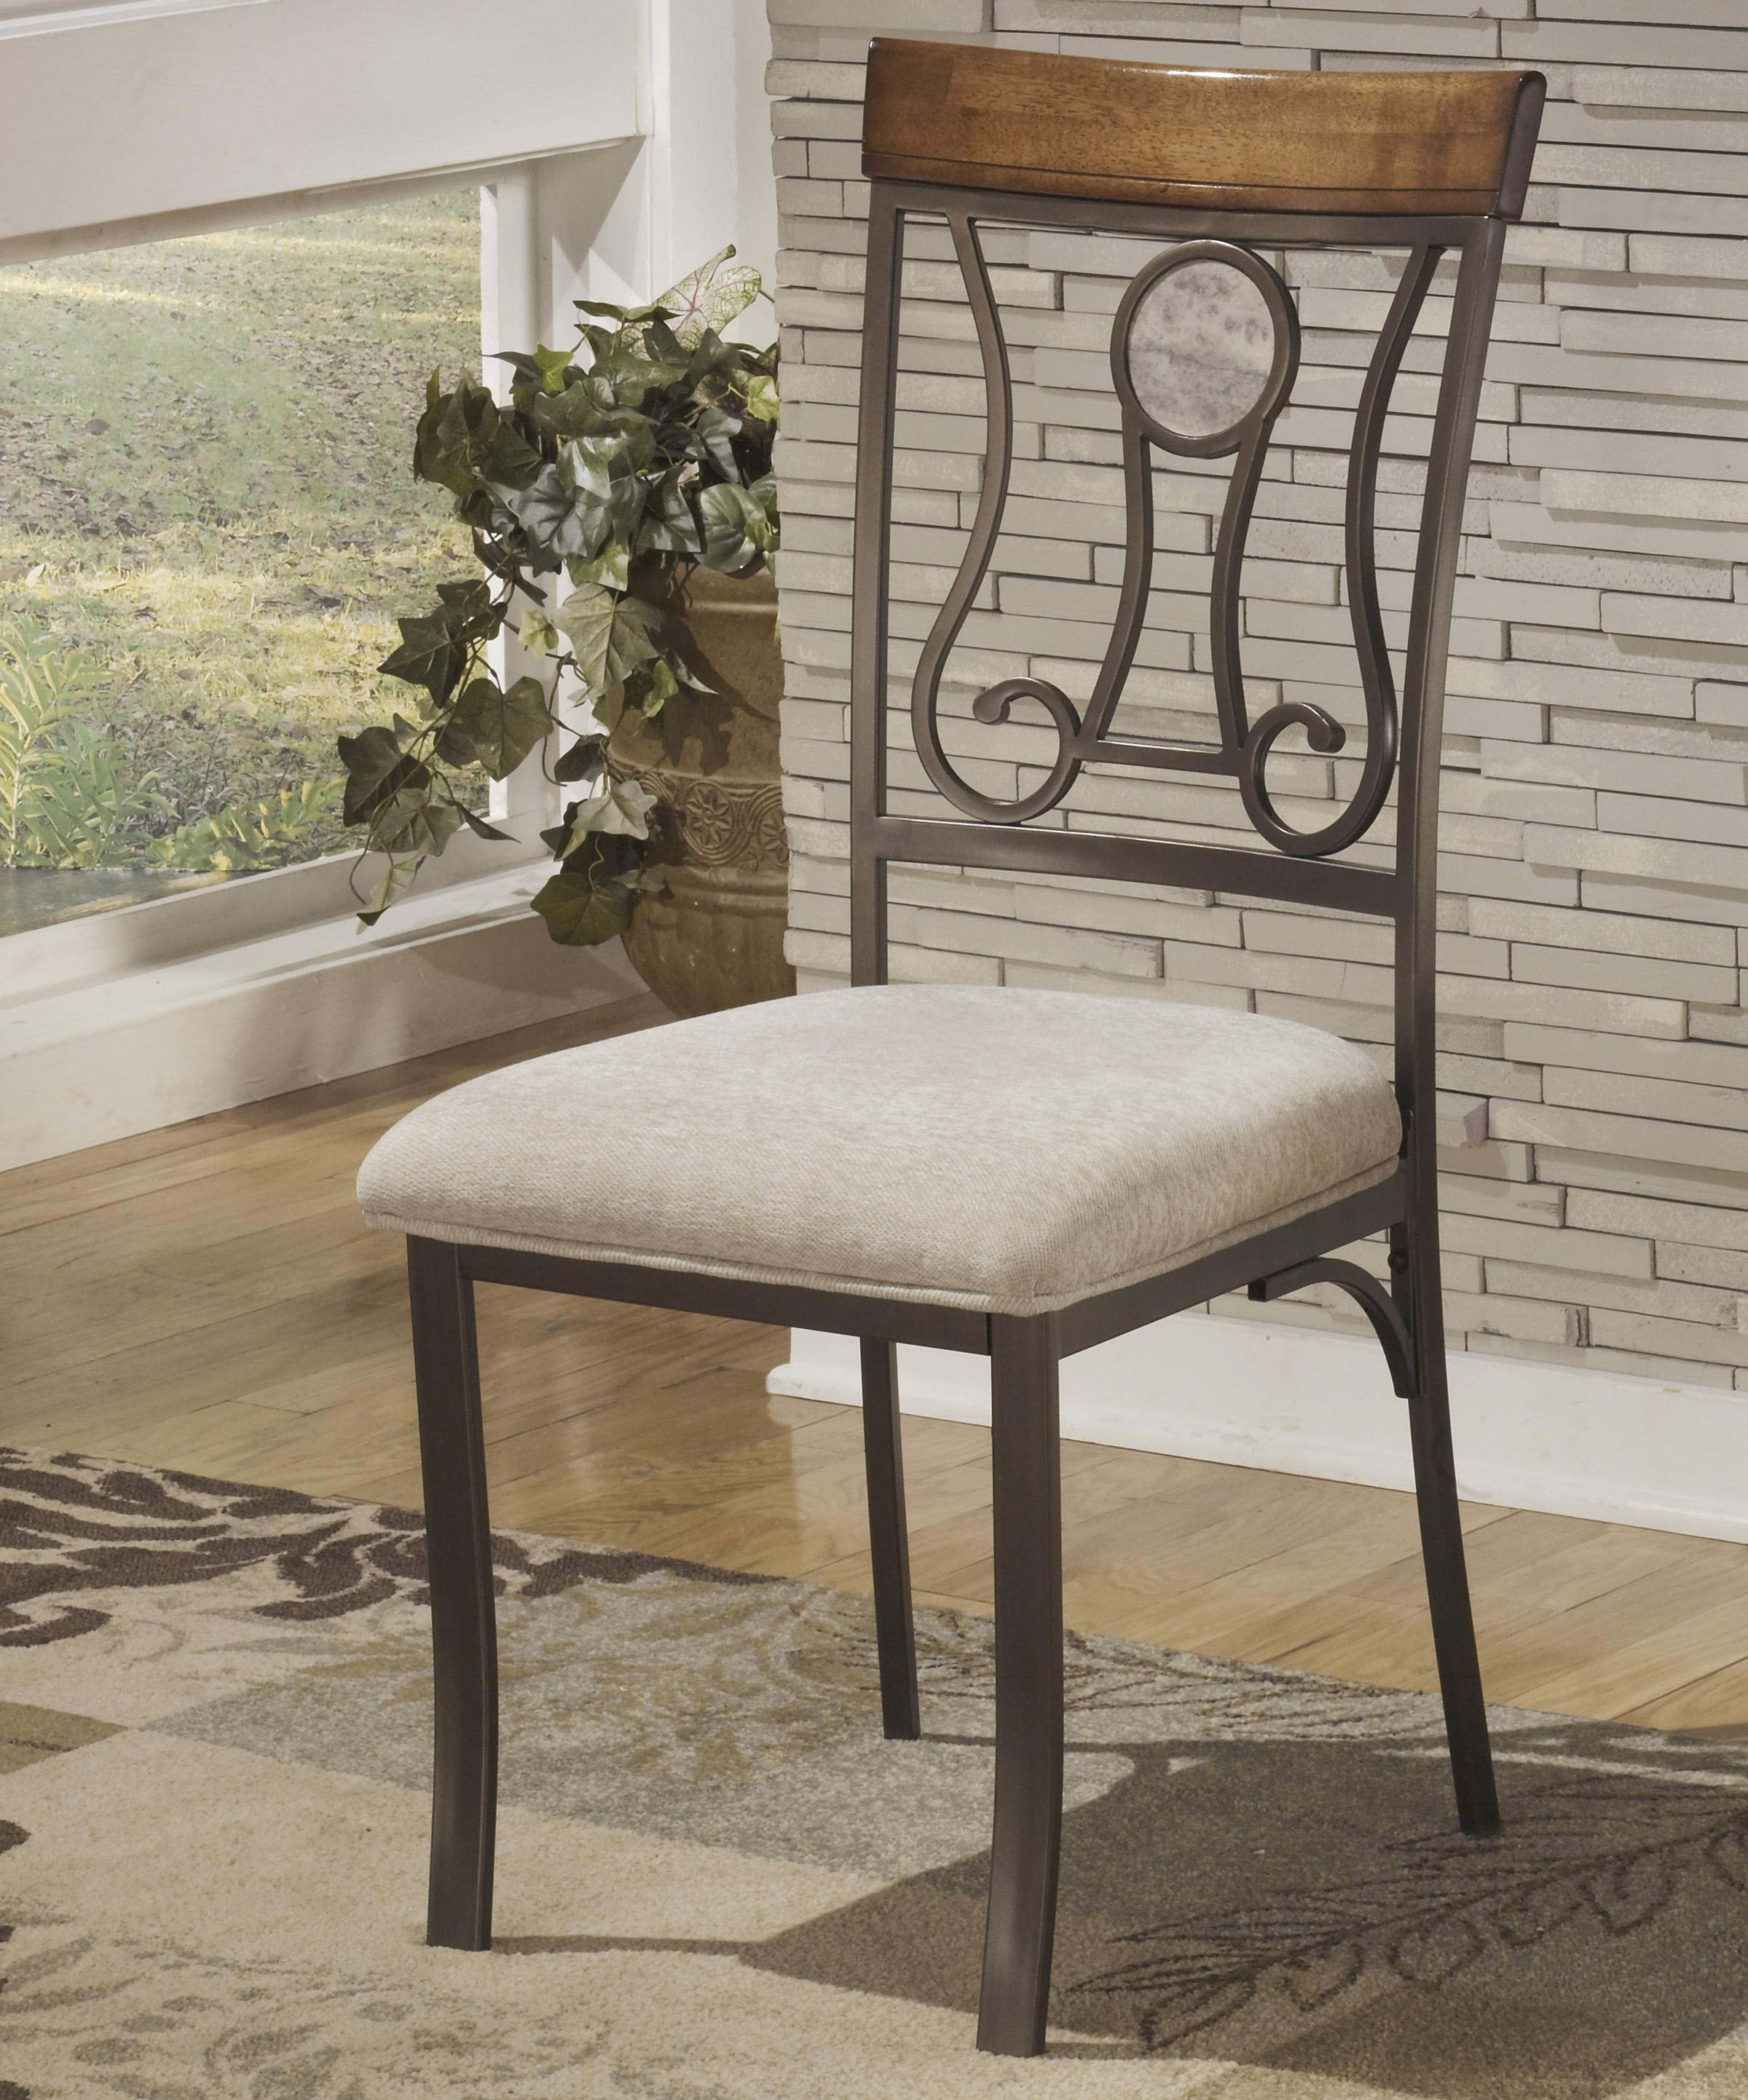 Signature Design by Ashley Hopstand Dining Upholstered Side Chair - Item Number: D314-01